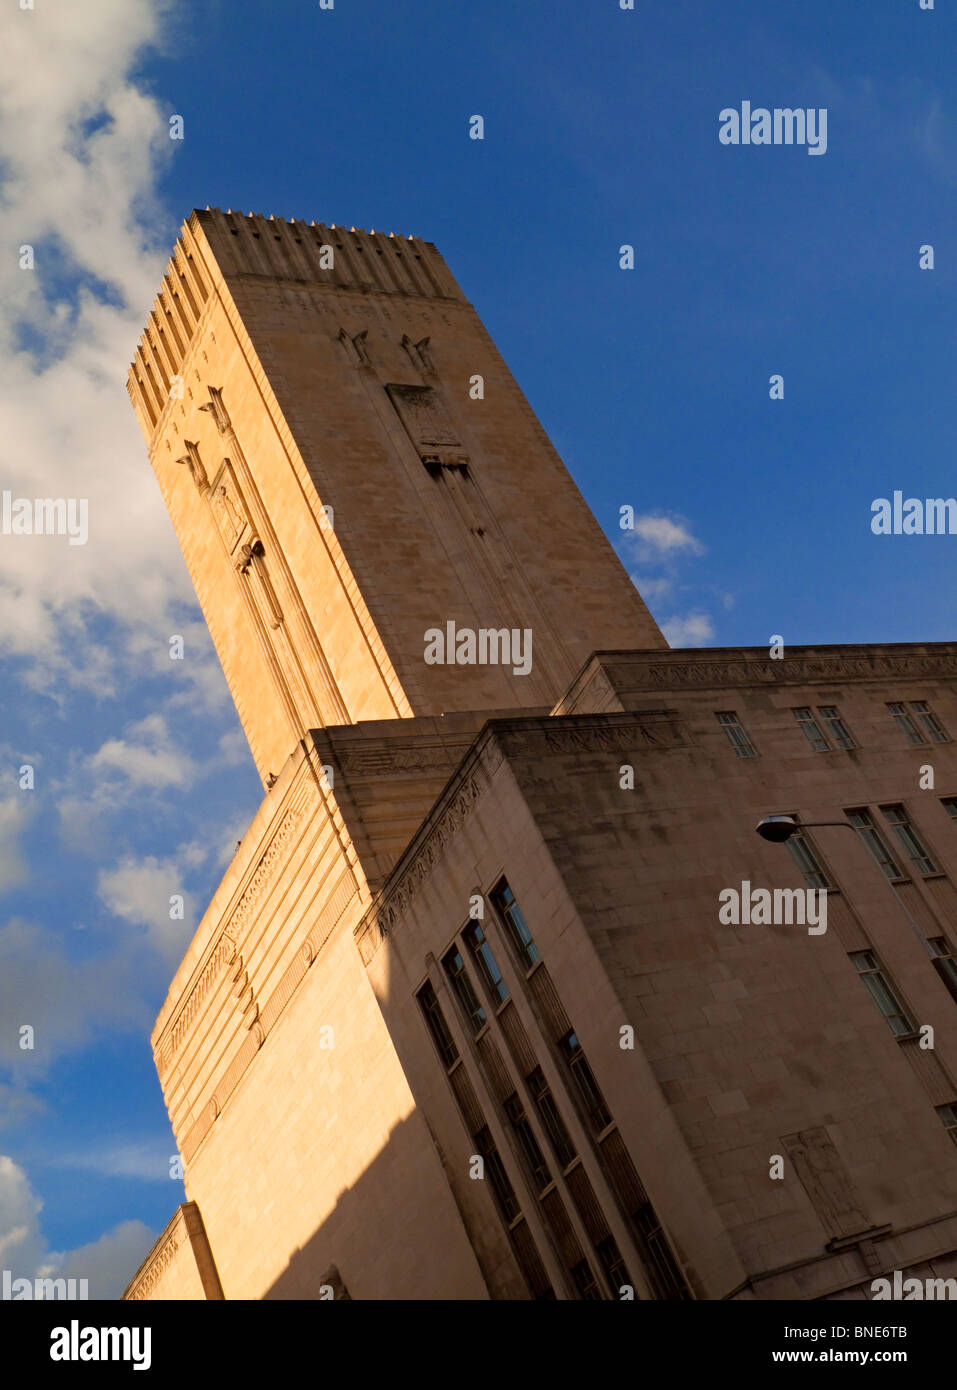 George's Dock Ventilation and Control Station, Pier Head, Liverpool, England designed by Herbert James Rowse - Stock Image